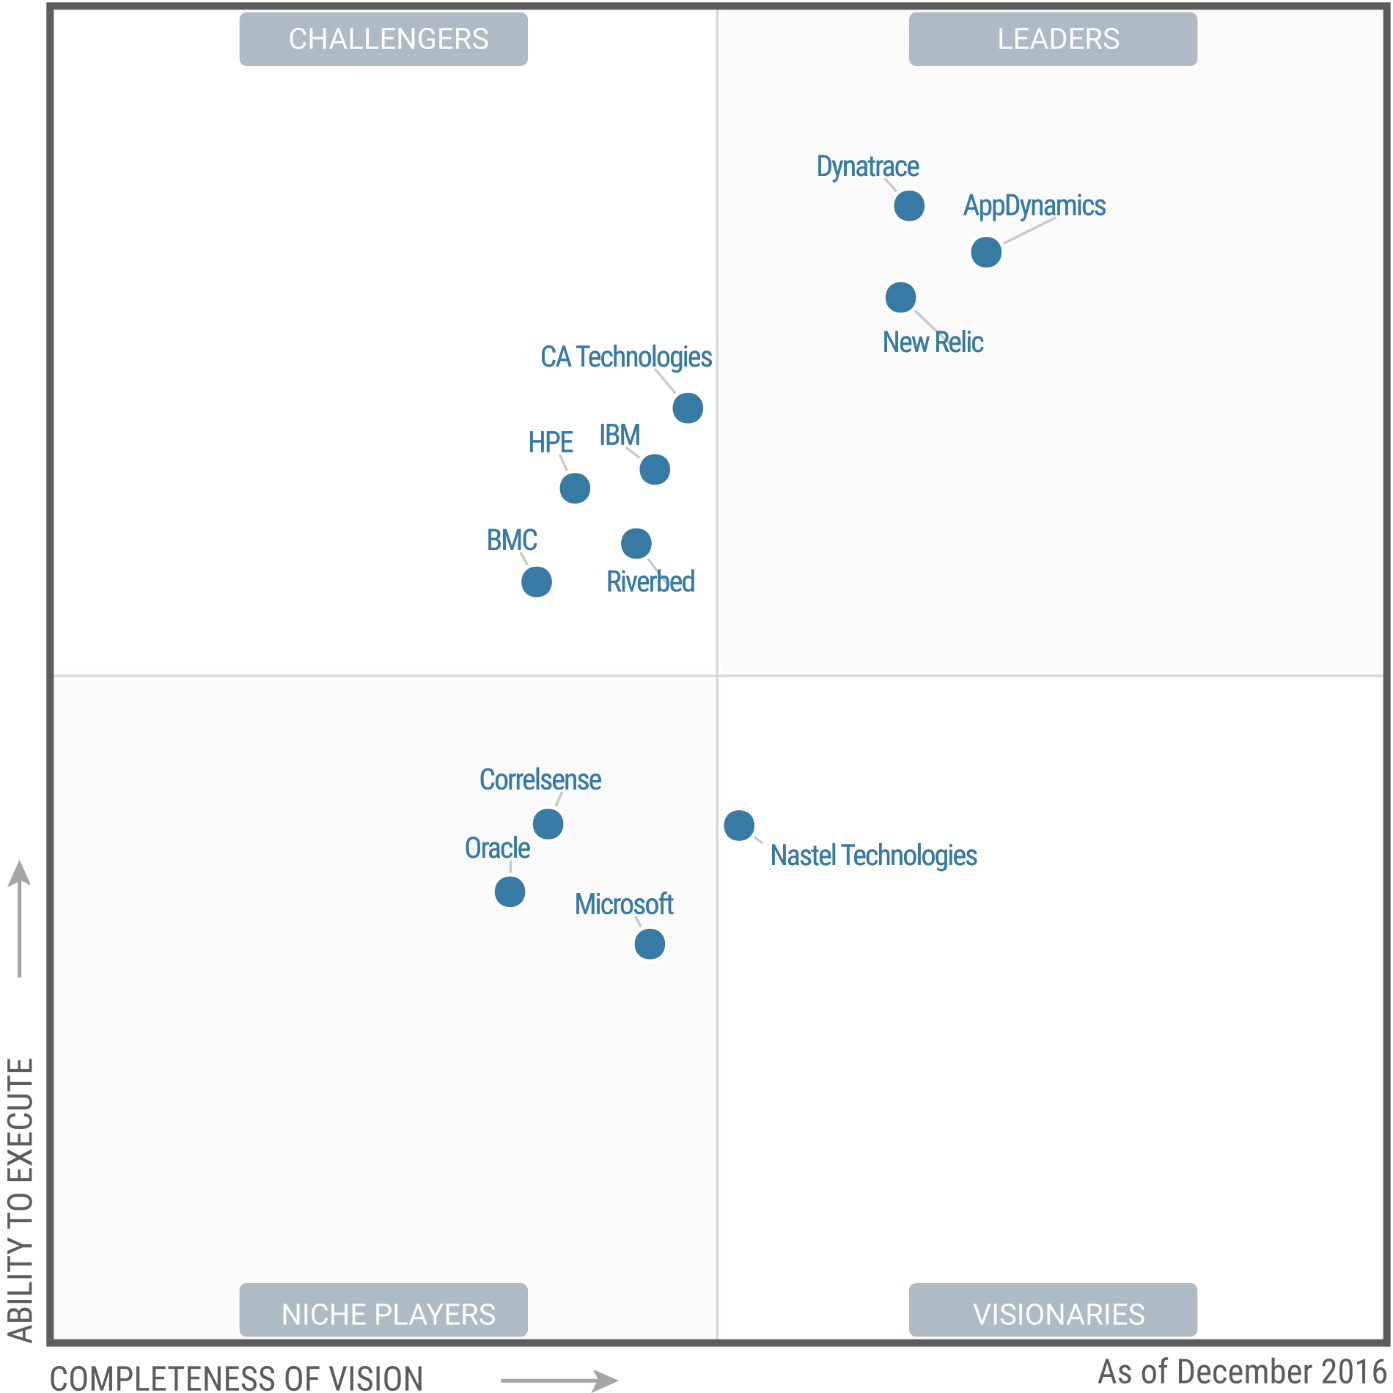 Magic Quadrant for Application Performance Monitoring Suites 2016 (G00298377)